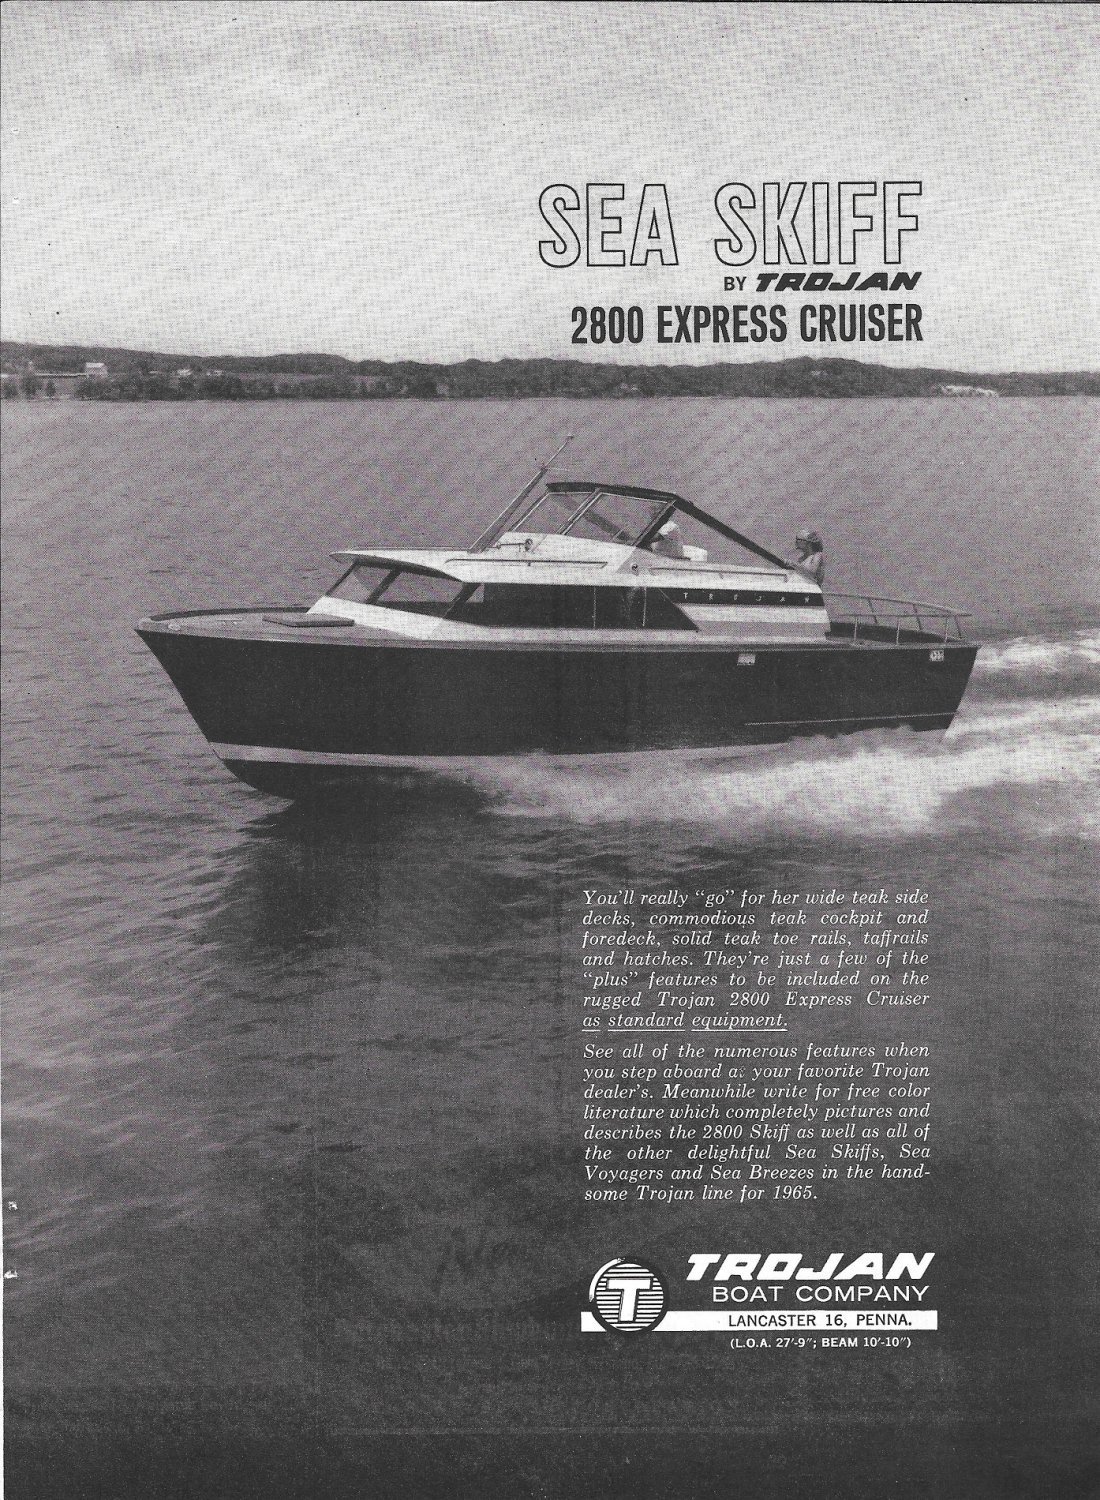 1964 Trojan Sea Skiff 2800 Express Cruiser Ad- Nice Photo